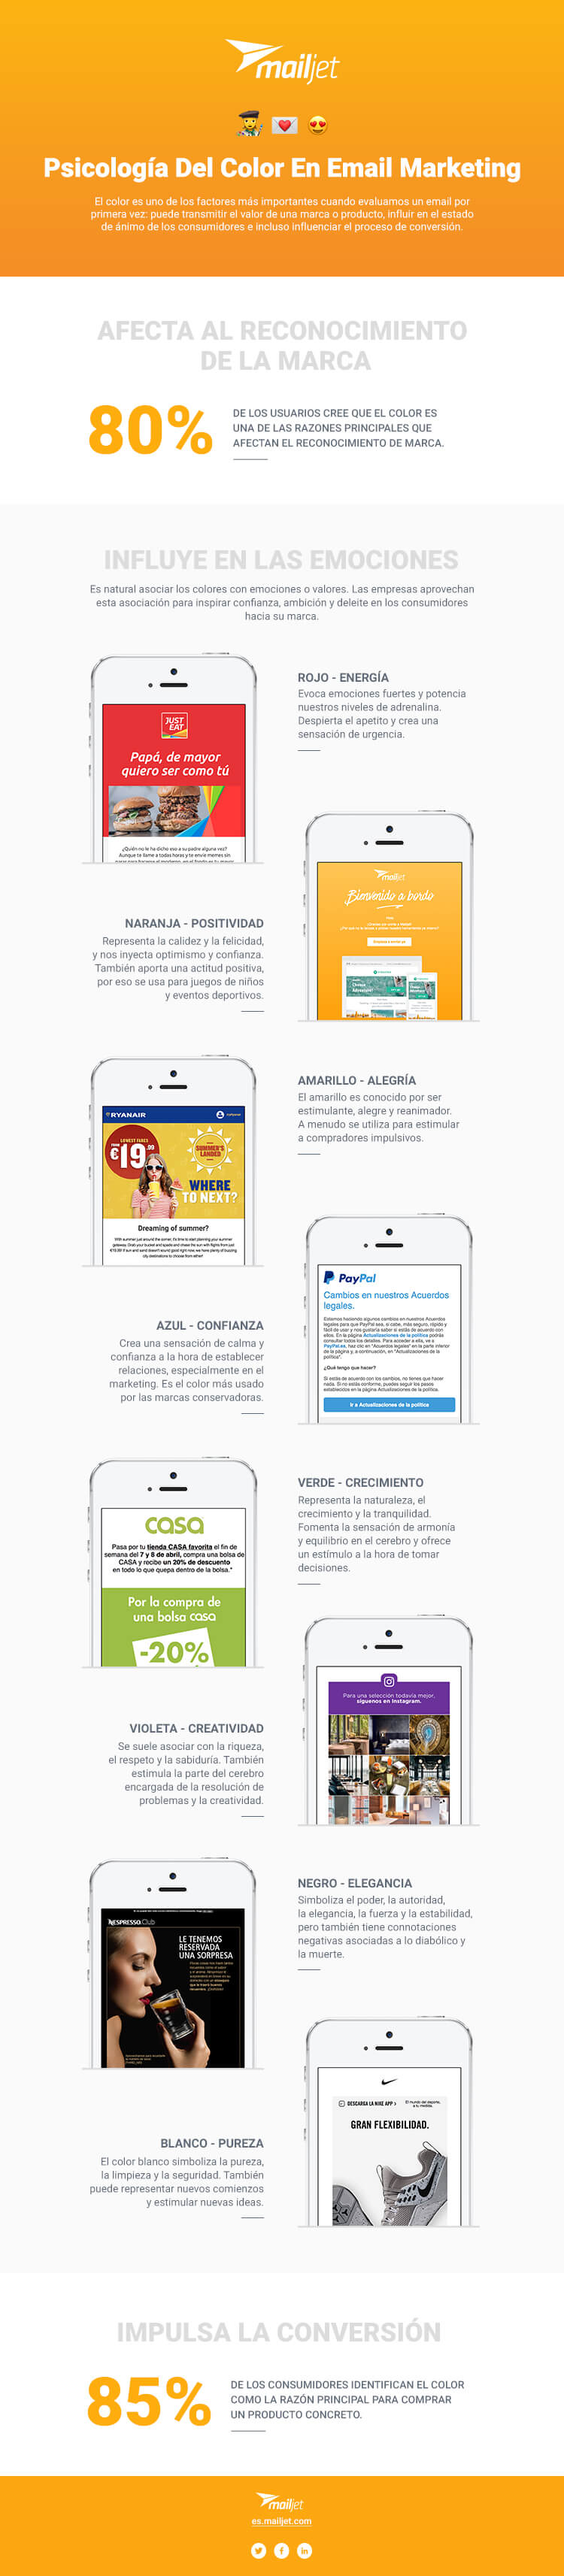 Psicología del color en email marketing